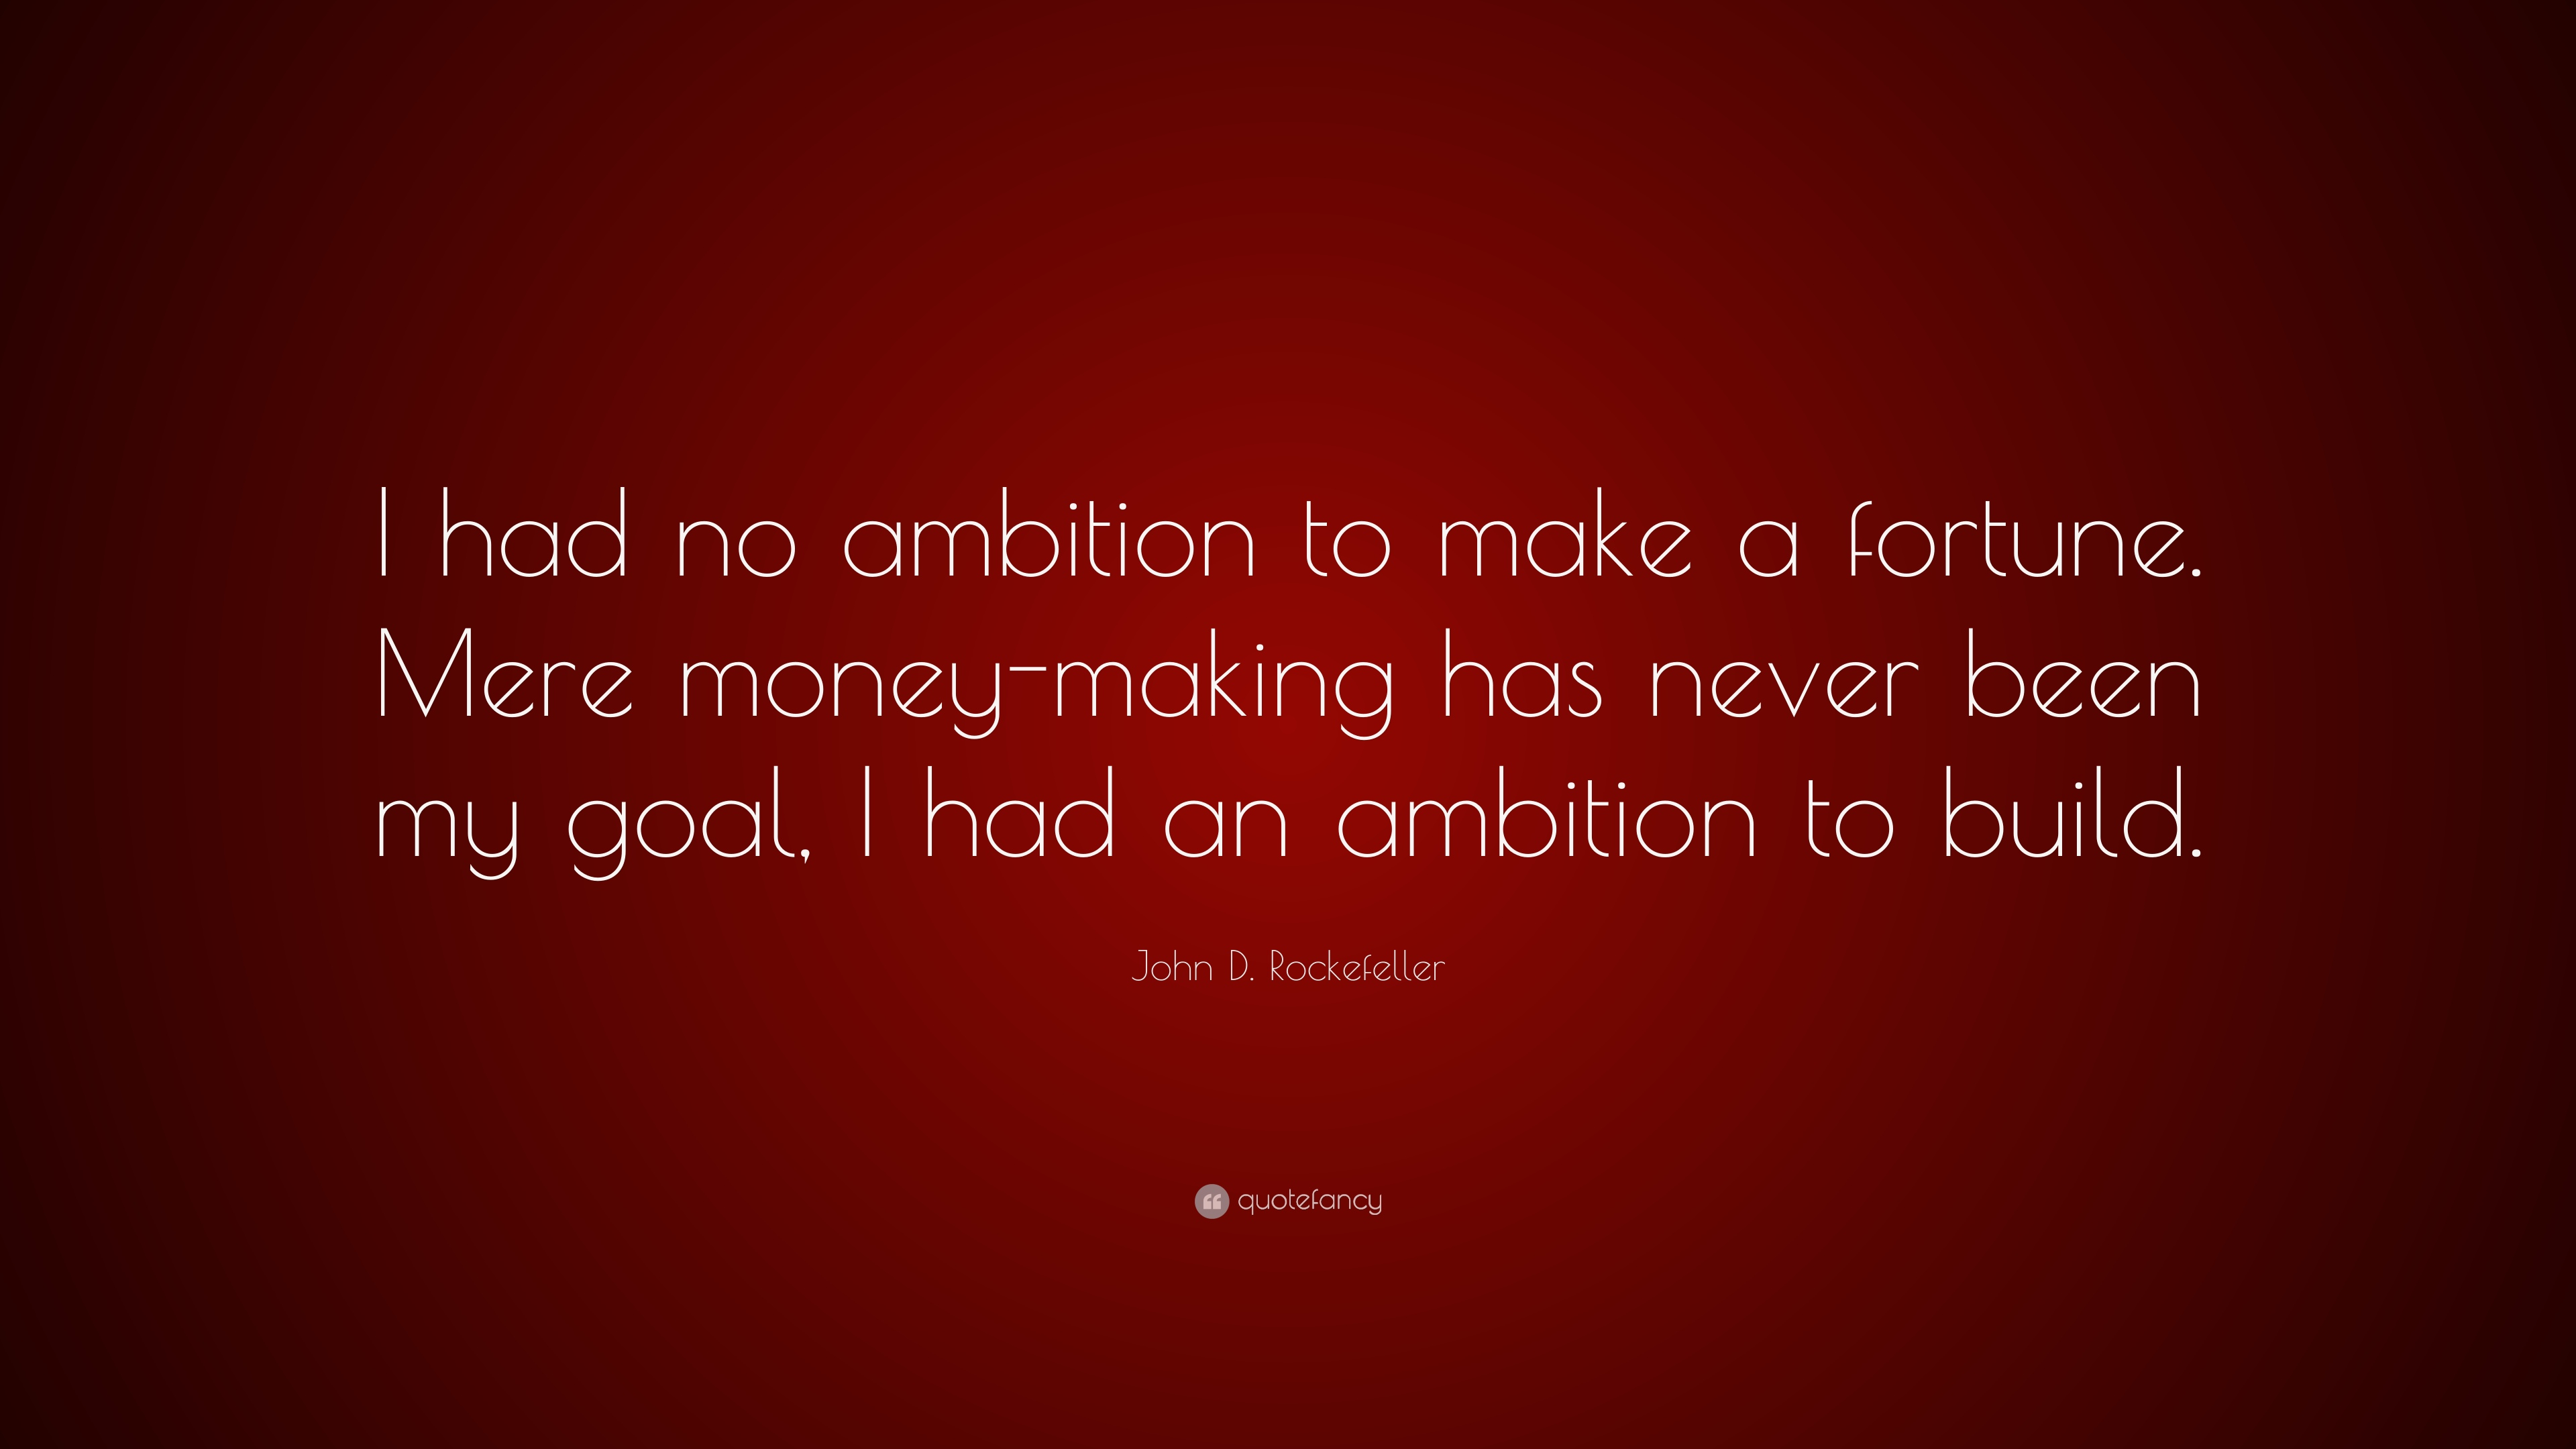 John D Rockefeller Quote I Had No Ambition To Make A Fortune